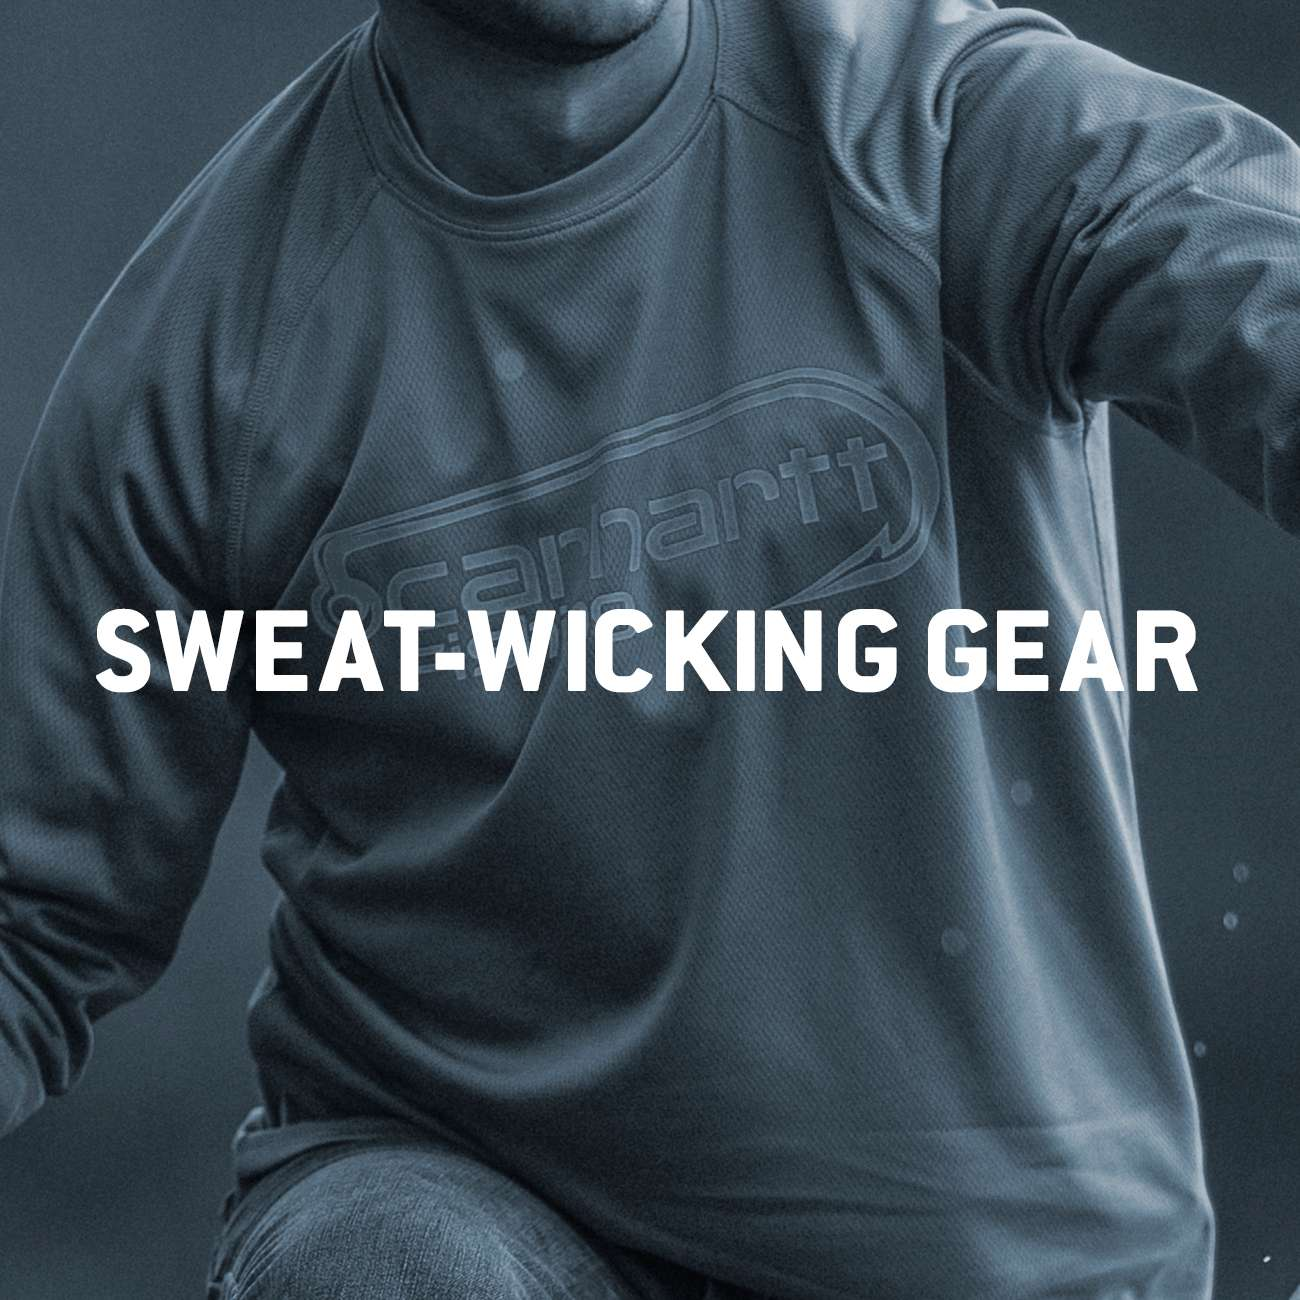 sweat-wicking gear